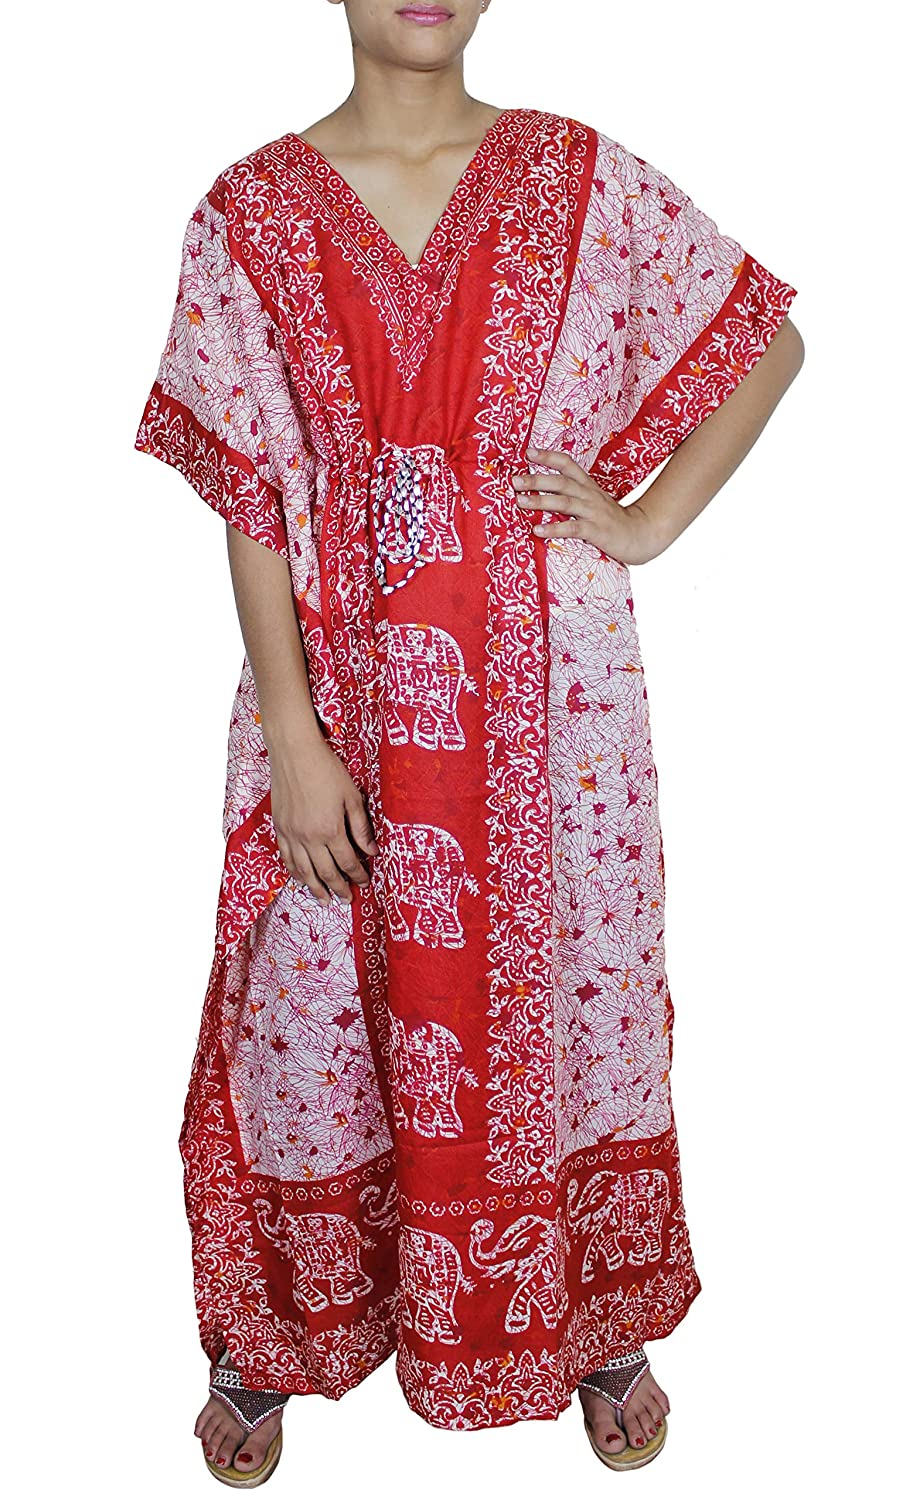 Womens Swimwear Beachwear Bikini Beach Wear Cover up Kaftan Summer Shirt Dress RoyaltyLane RLM-kaftan_long_015